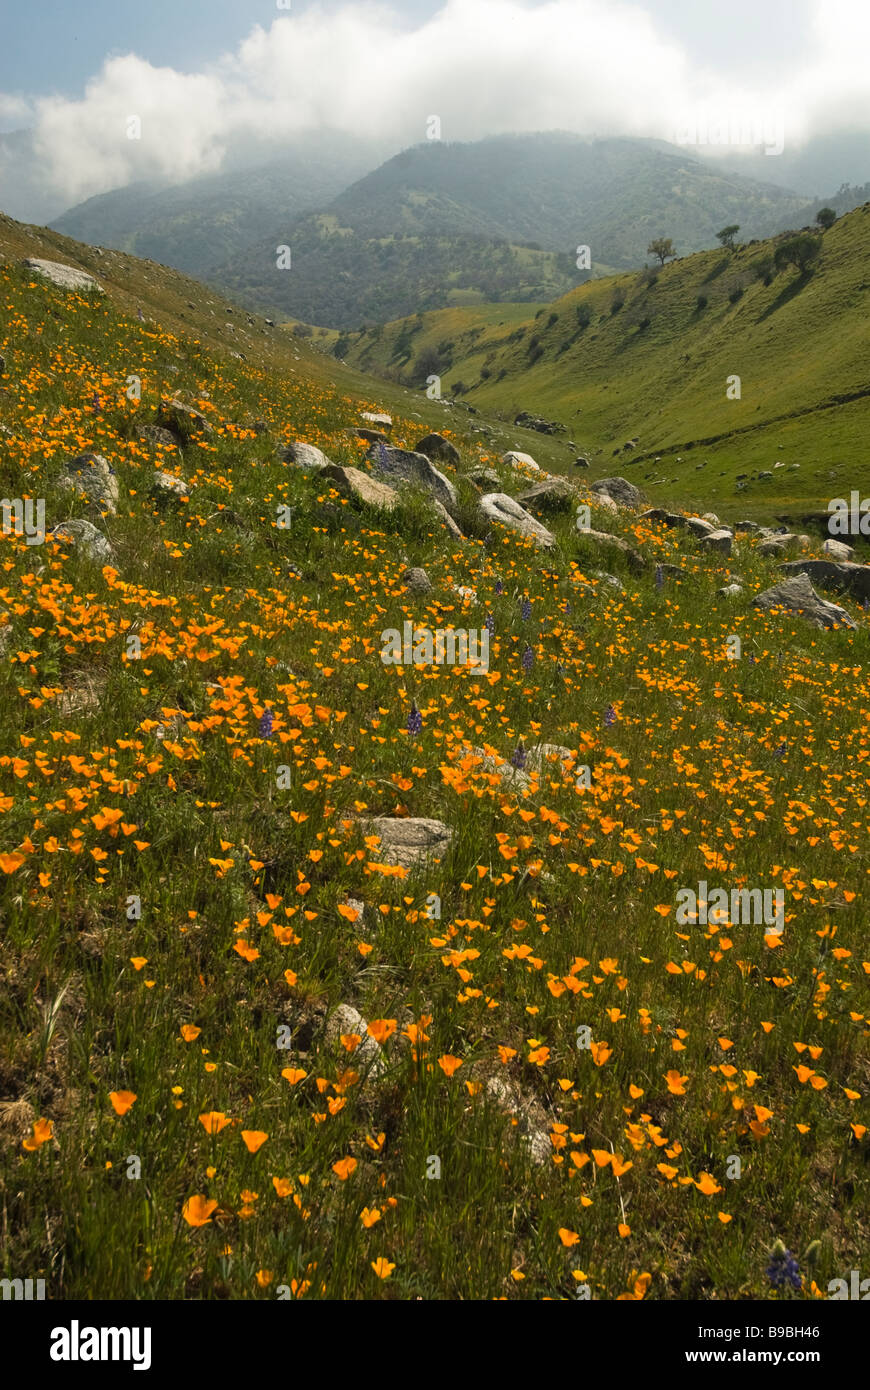 California wildflowers on hillside in Central California - Stock Image